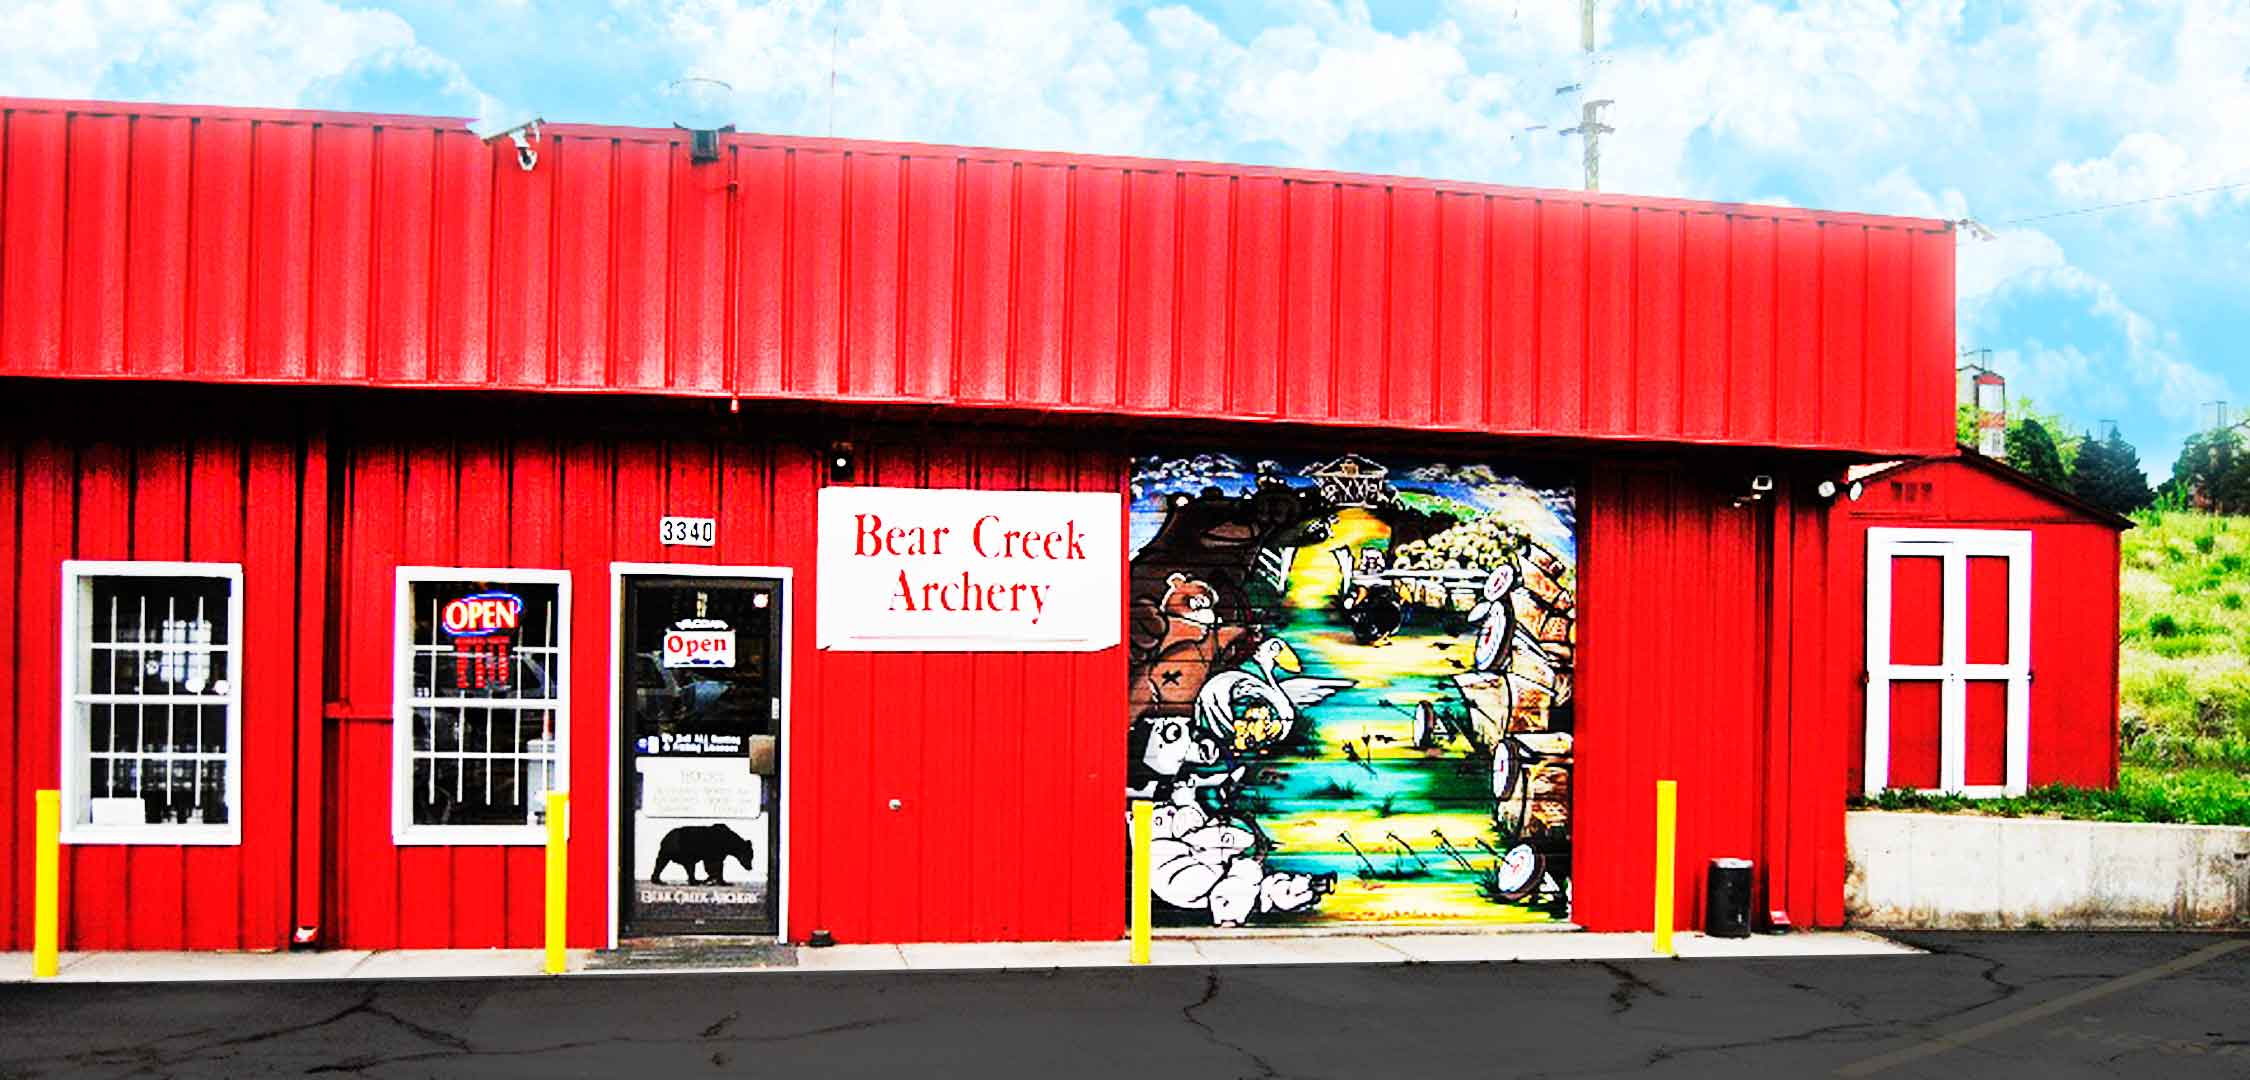 Bear Creek Archery Denver